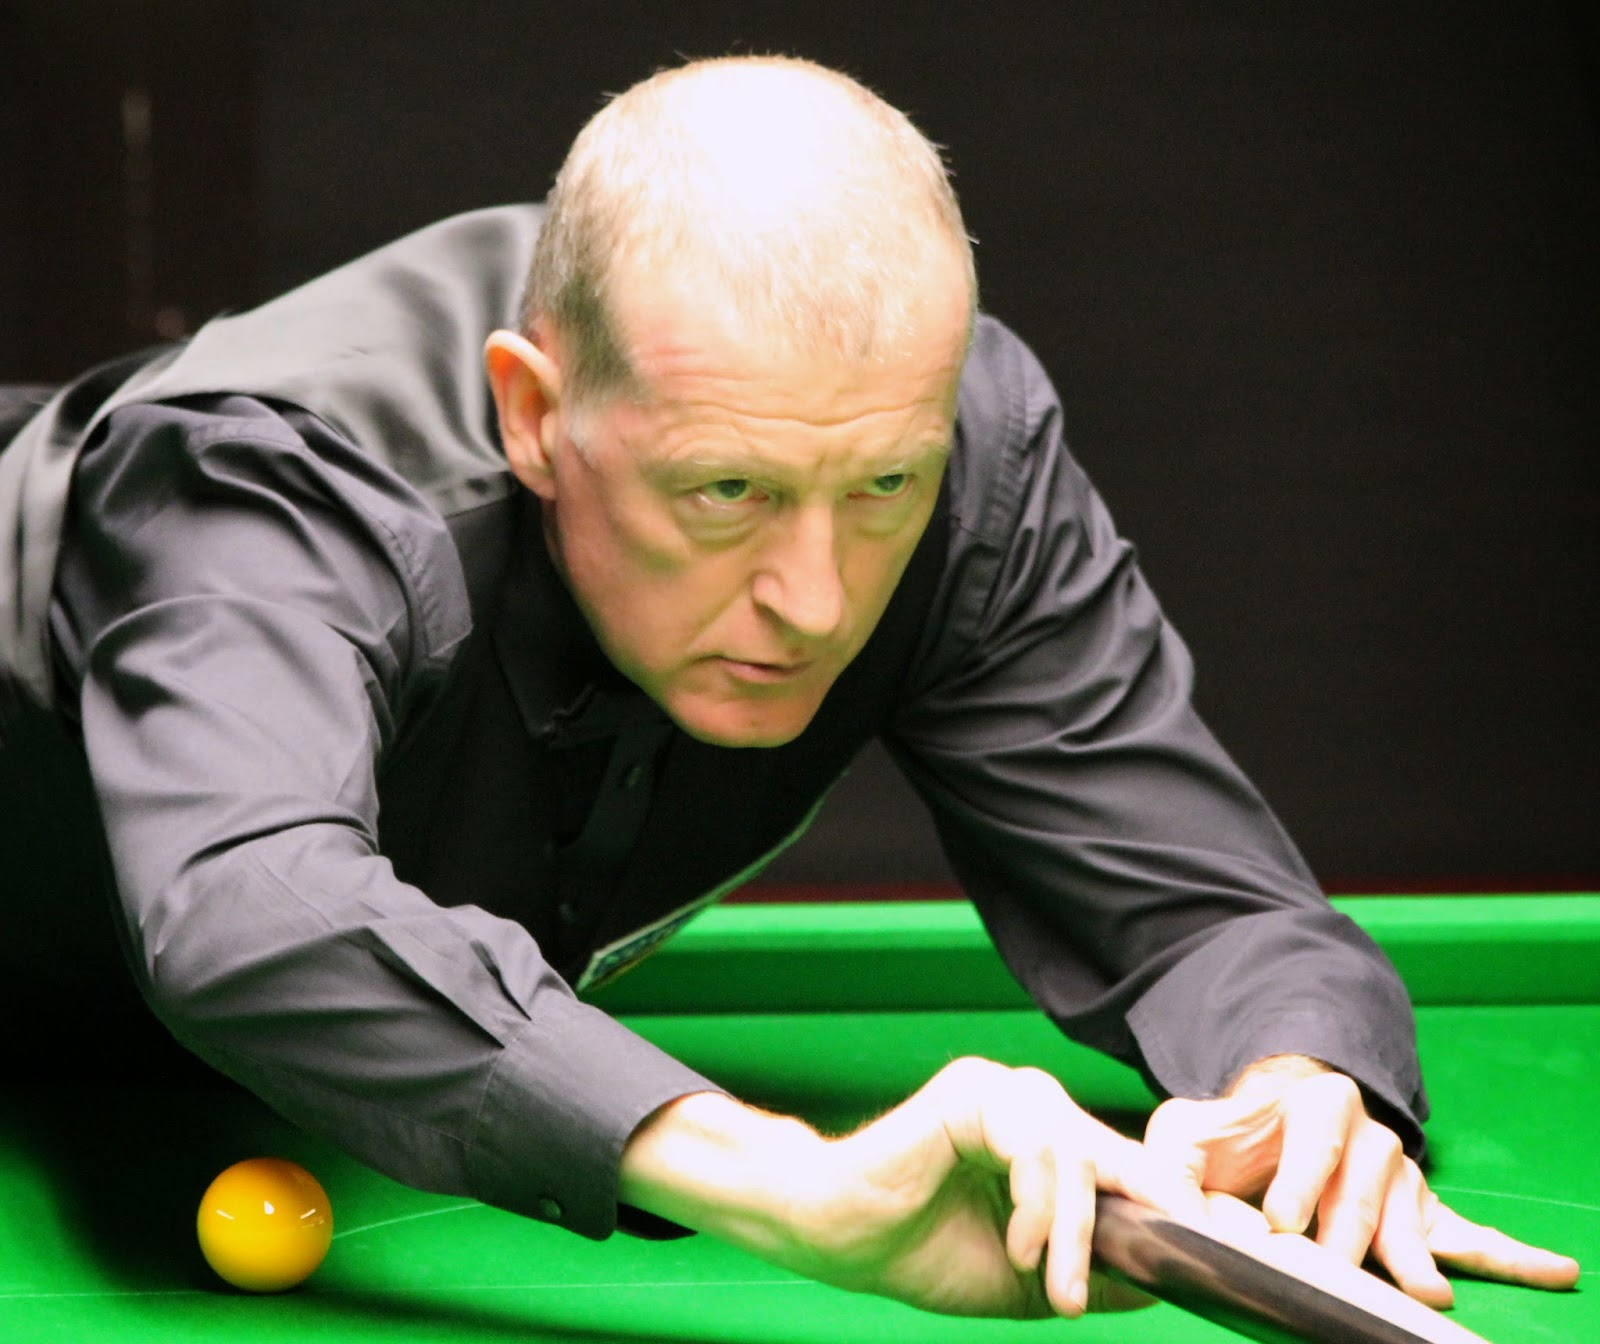 Image of snooker player Steve Davis